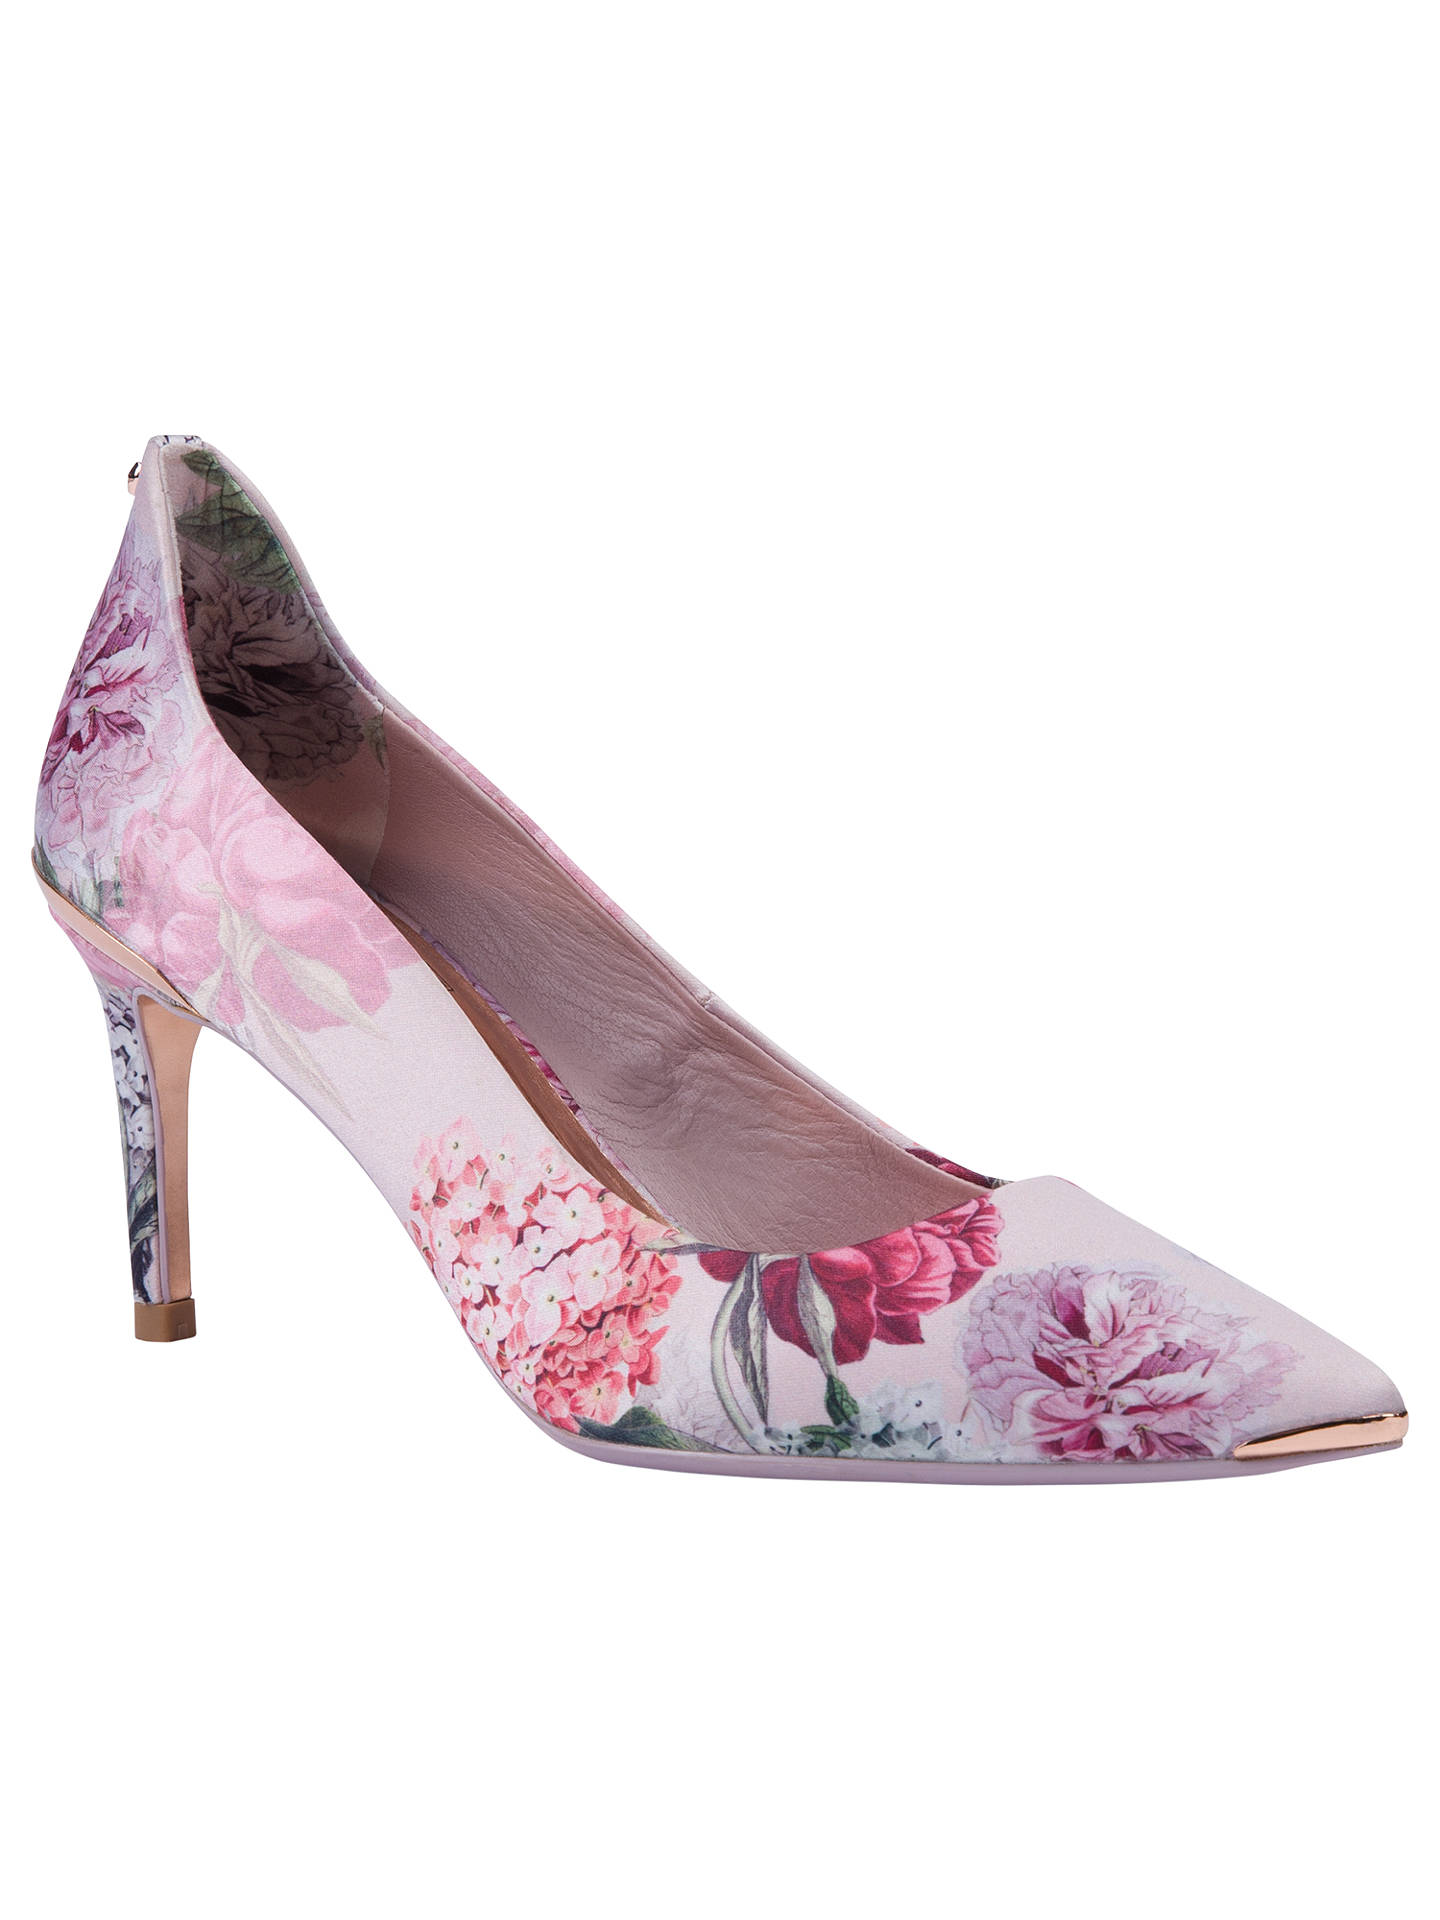 fd9f6e9d0d2a3 Buy Ted Baker Vyixyn Palace Garden Court Shoes